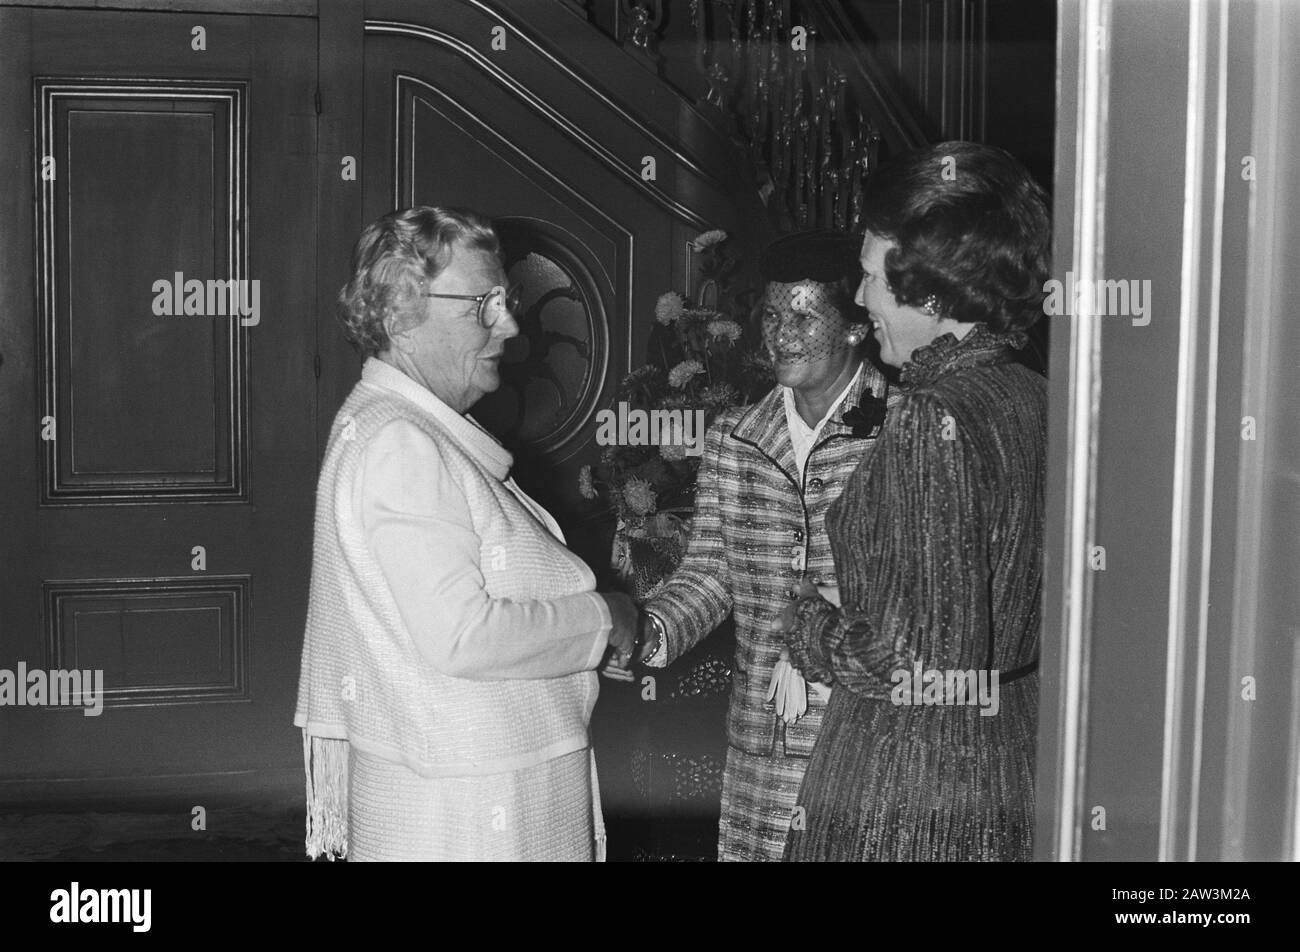 Simone Veil President High Resolution Stock Photography And Images Alamy